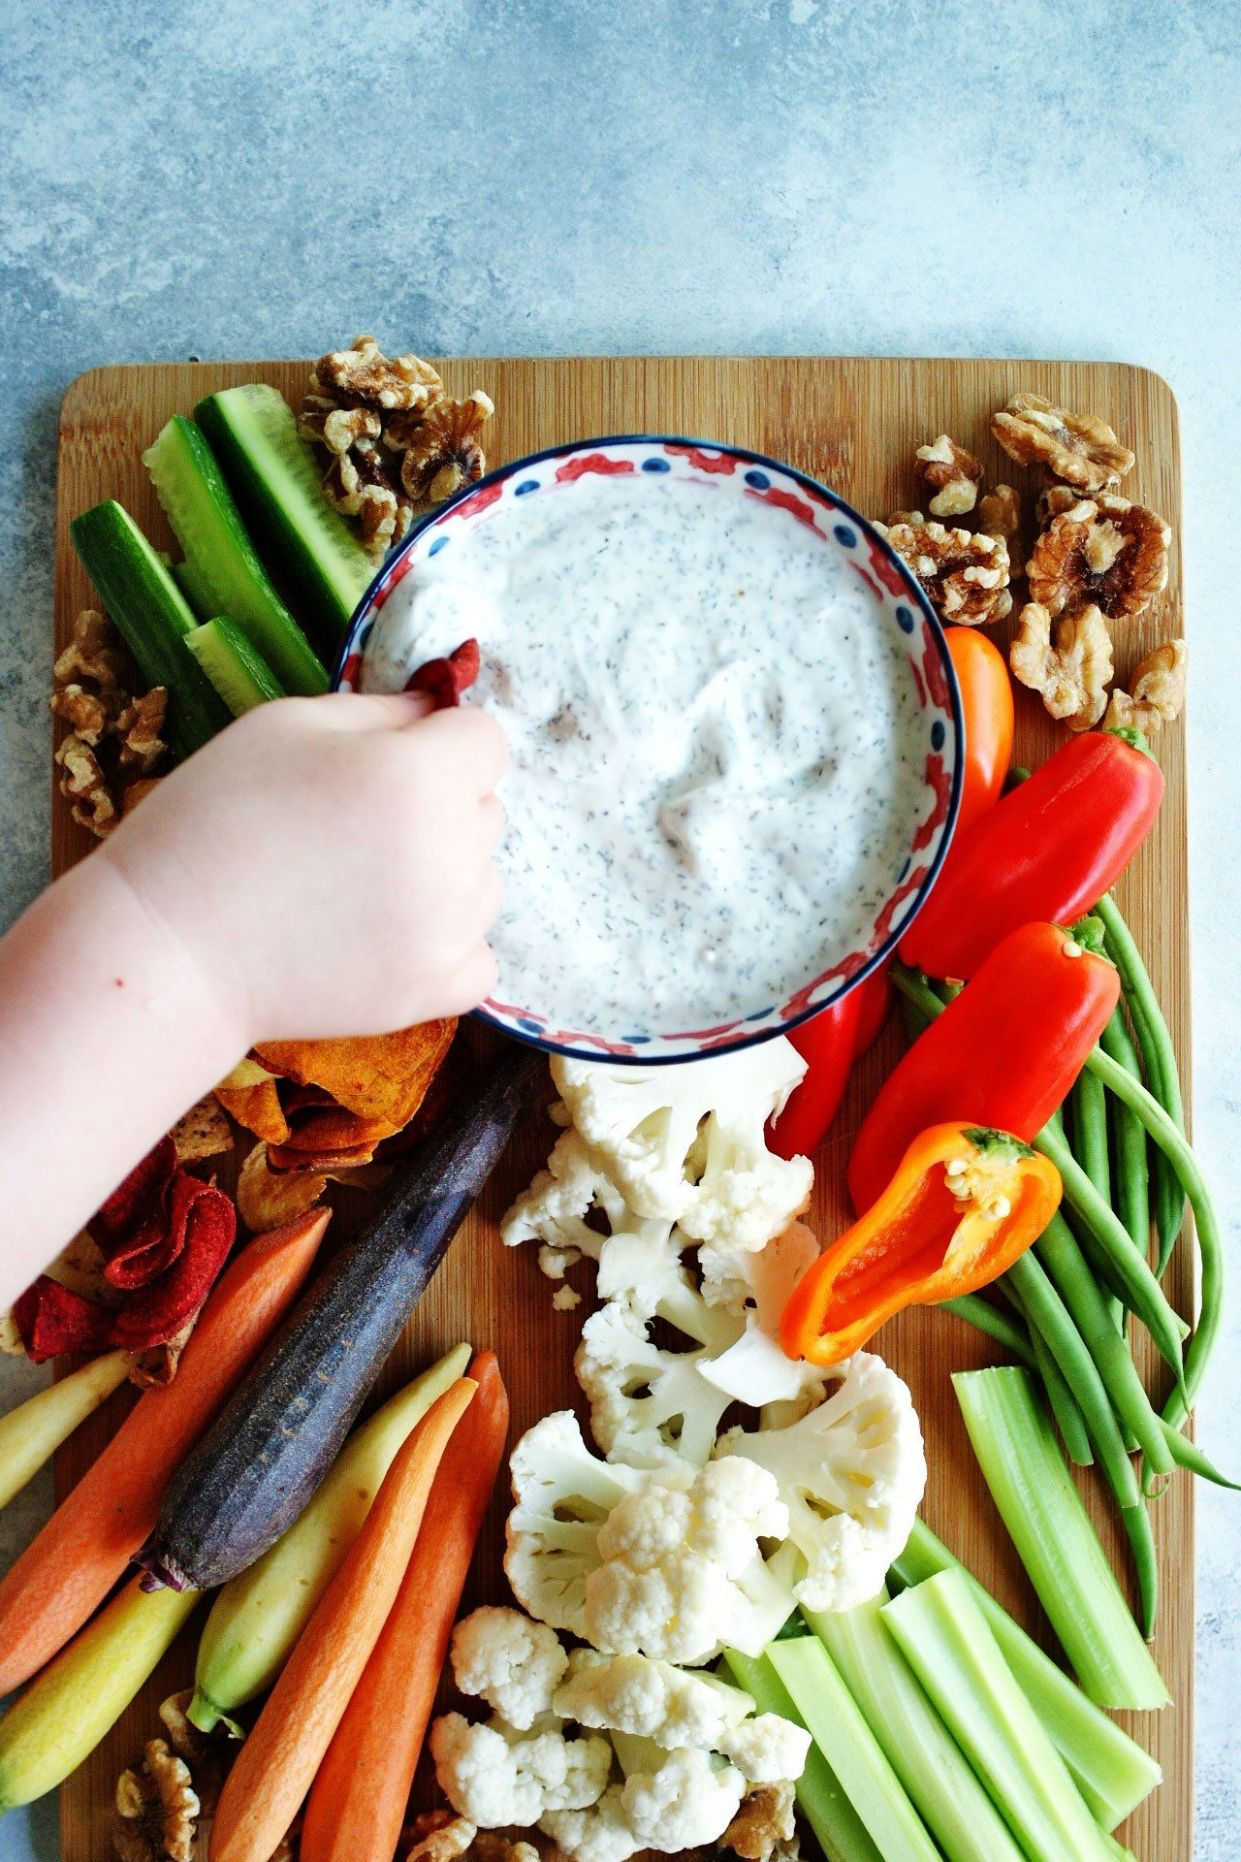 12 Ingredient Greek Yogurt Veggie Dip - Recipes Vegetable Dip